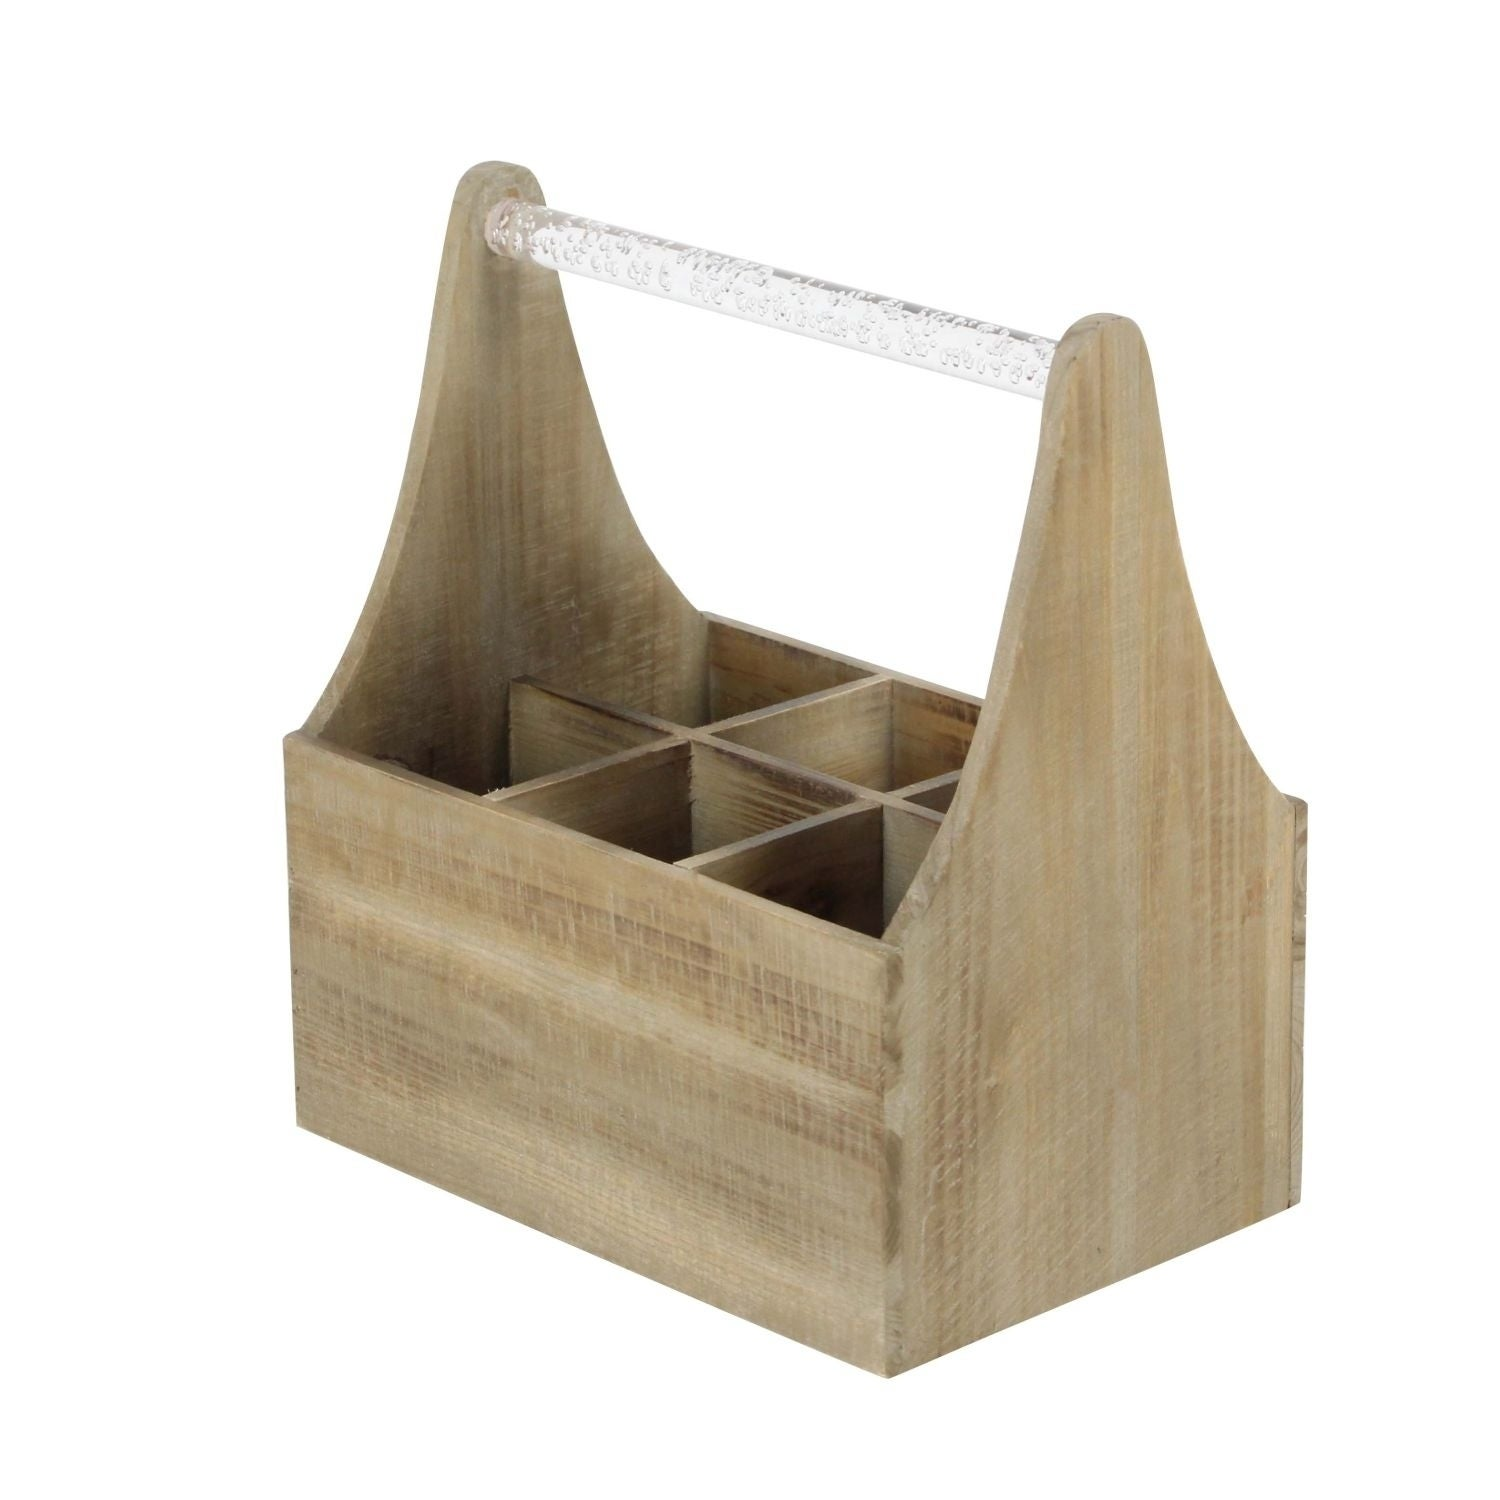 Studio 350 Wood Acrylic Wine Holder 11 inches wide, 13 in...